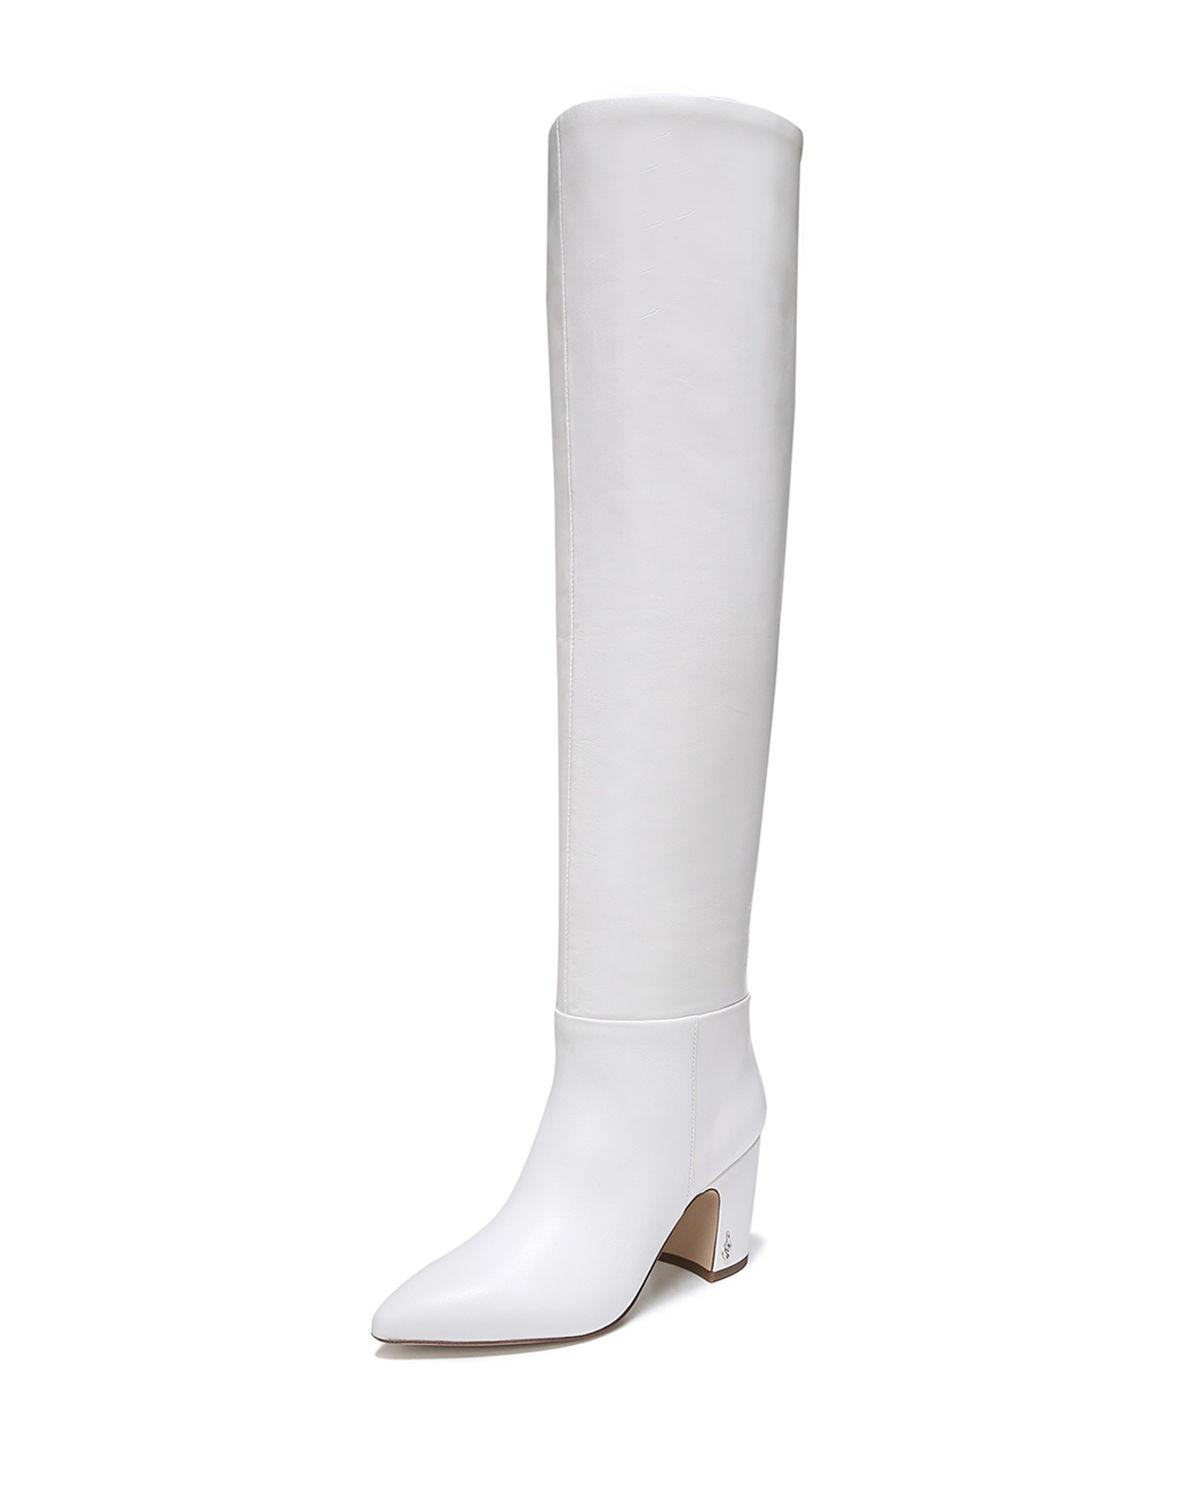 4016f8a2ac21 Lyst - Sam Edelman Hutton Leather Over-the-knee Boots in White